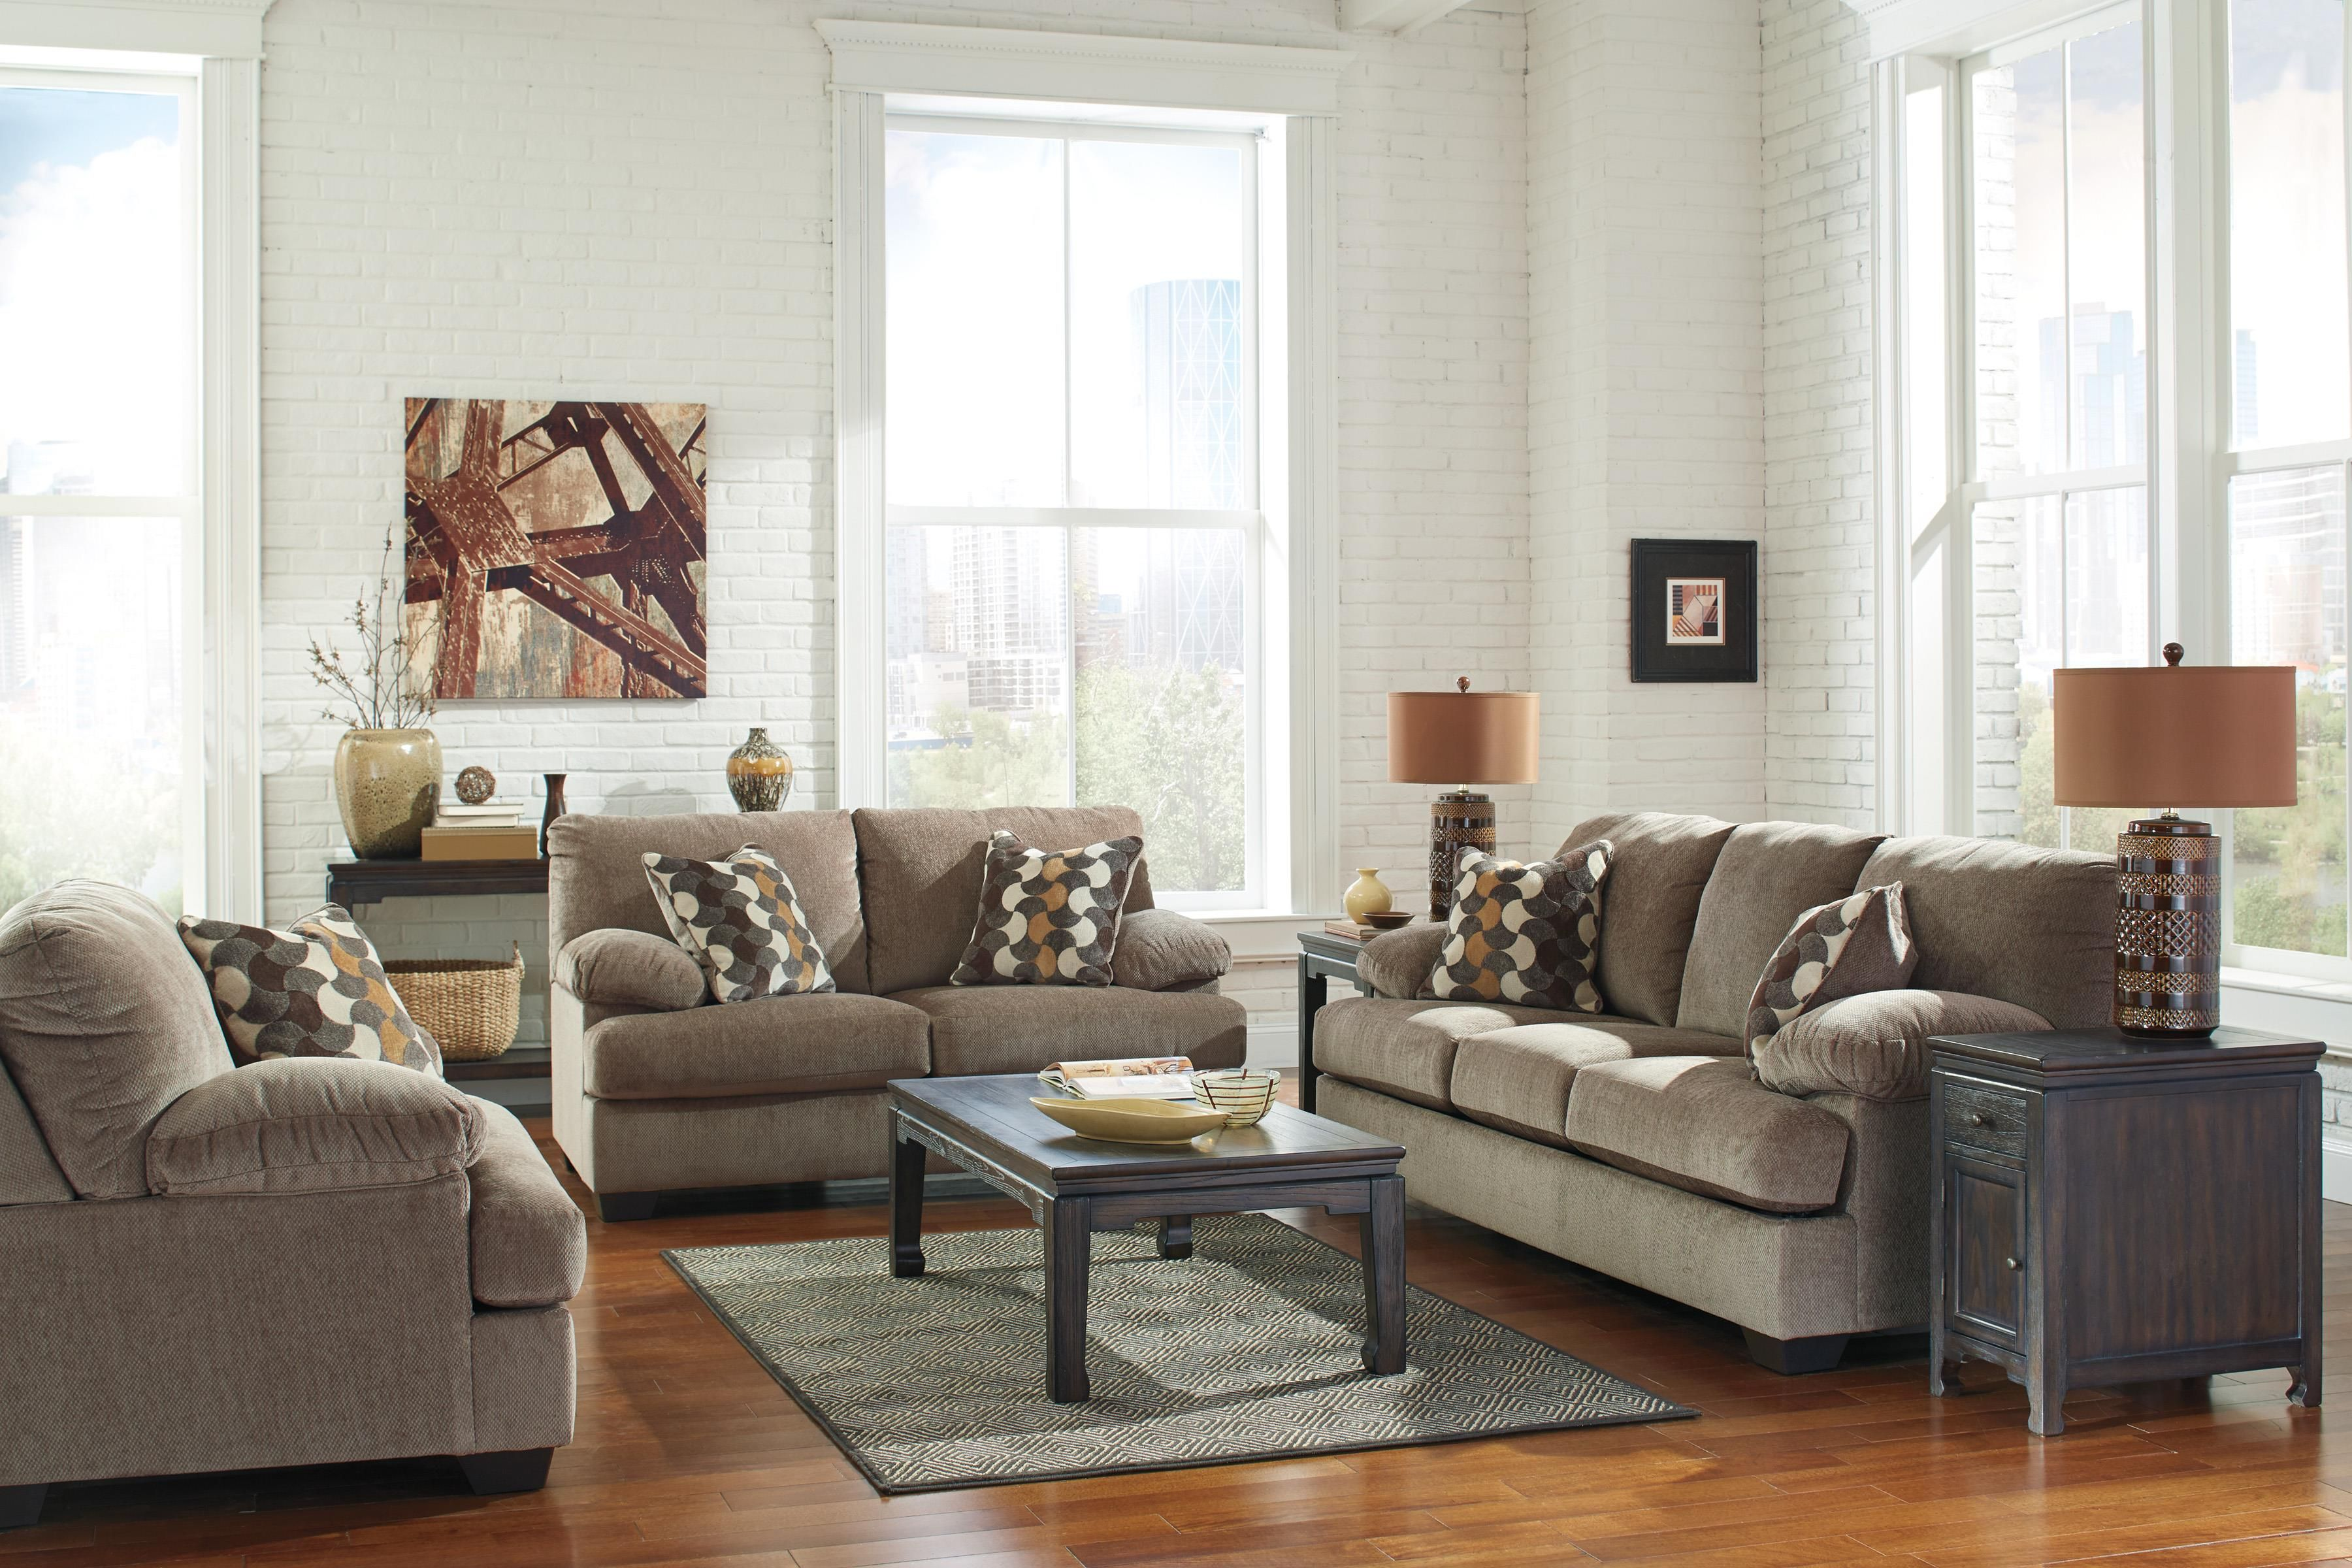 Marlo Furniture Living Room Kenzel Stationary Living Room Group By Benchcraft Marlo